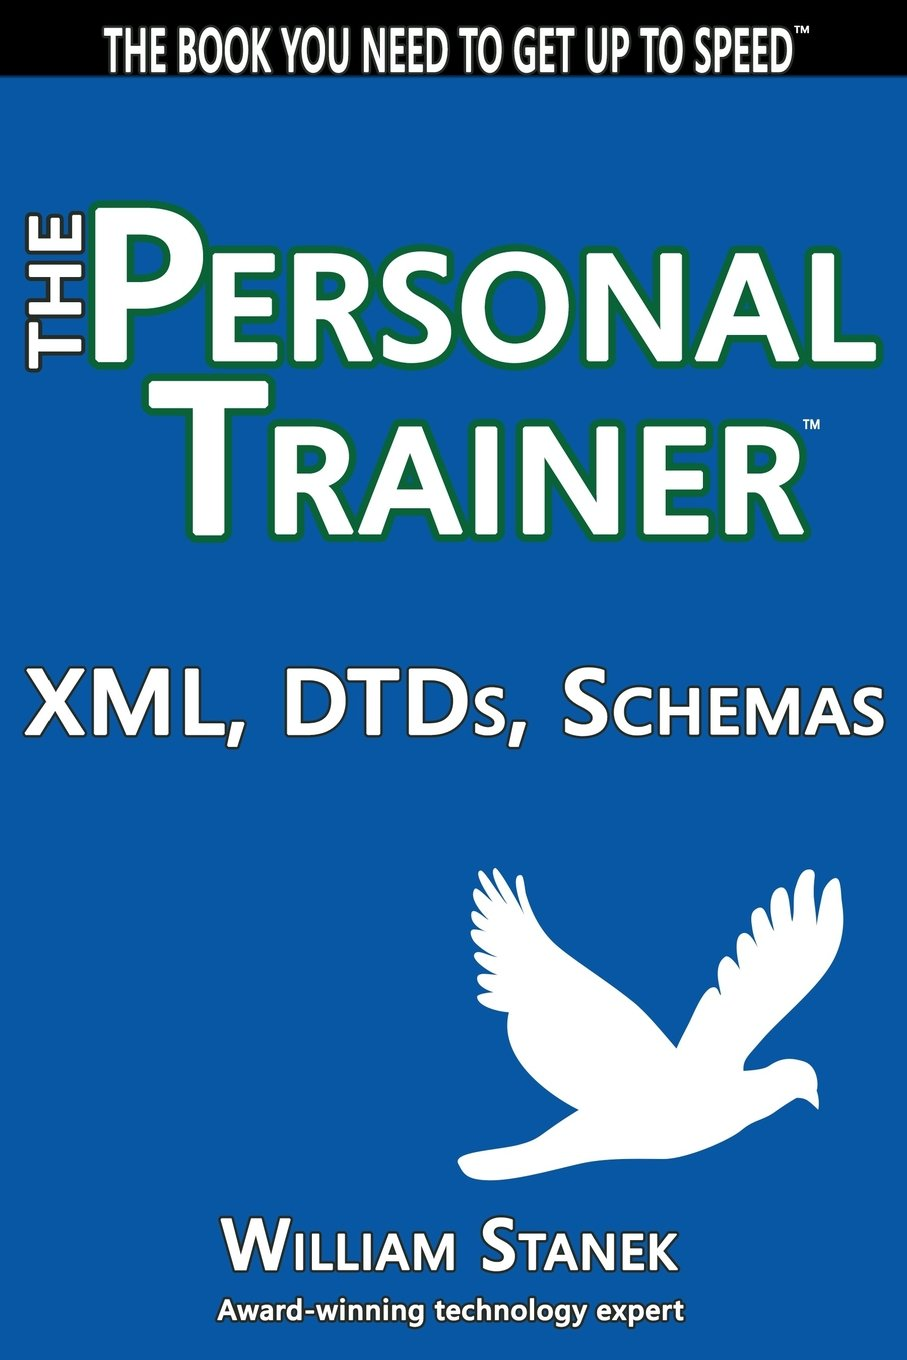 XML, DTDs, Schemas: The Personal Trainer: William Stanek: 9781499310962:  Amazon.com: Books